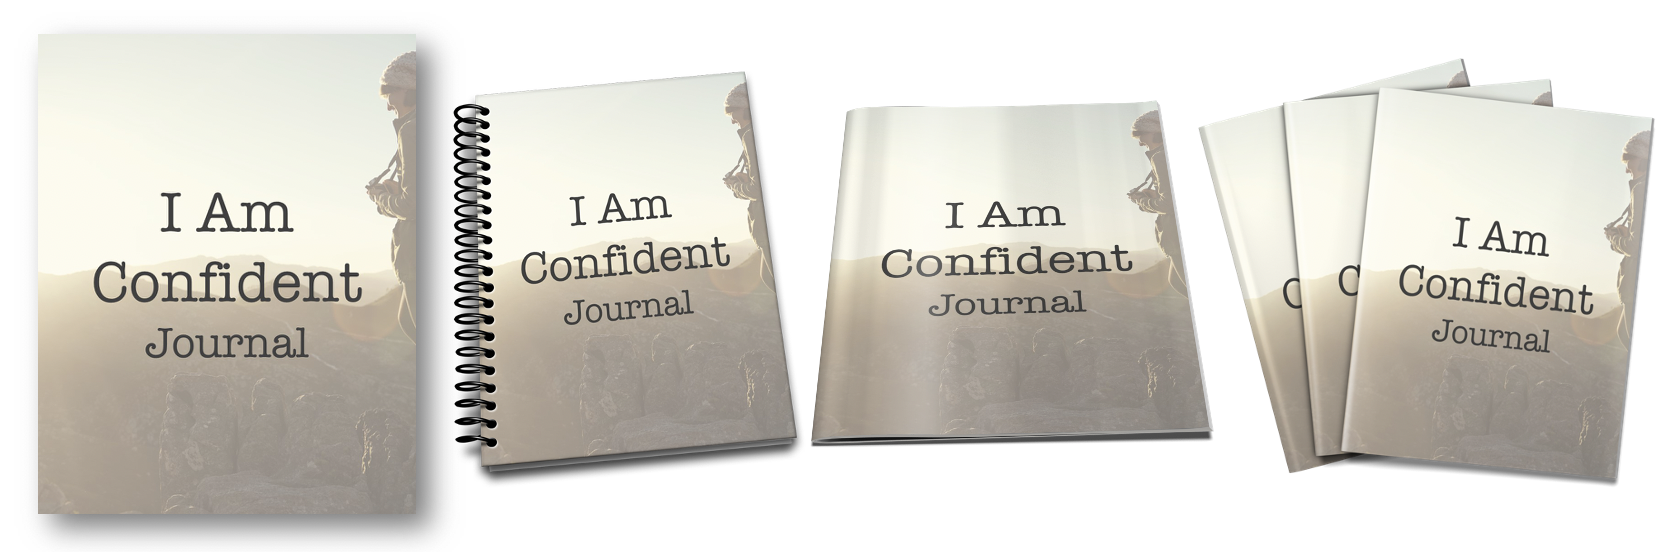 I am Confident Journal Covers